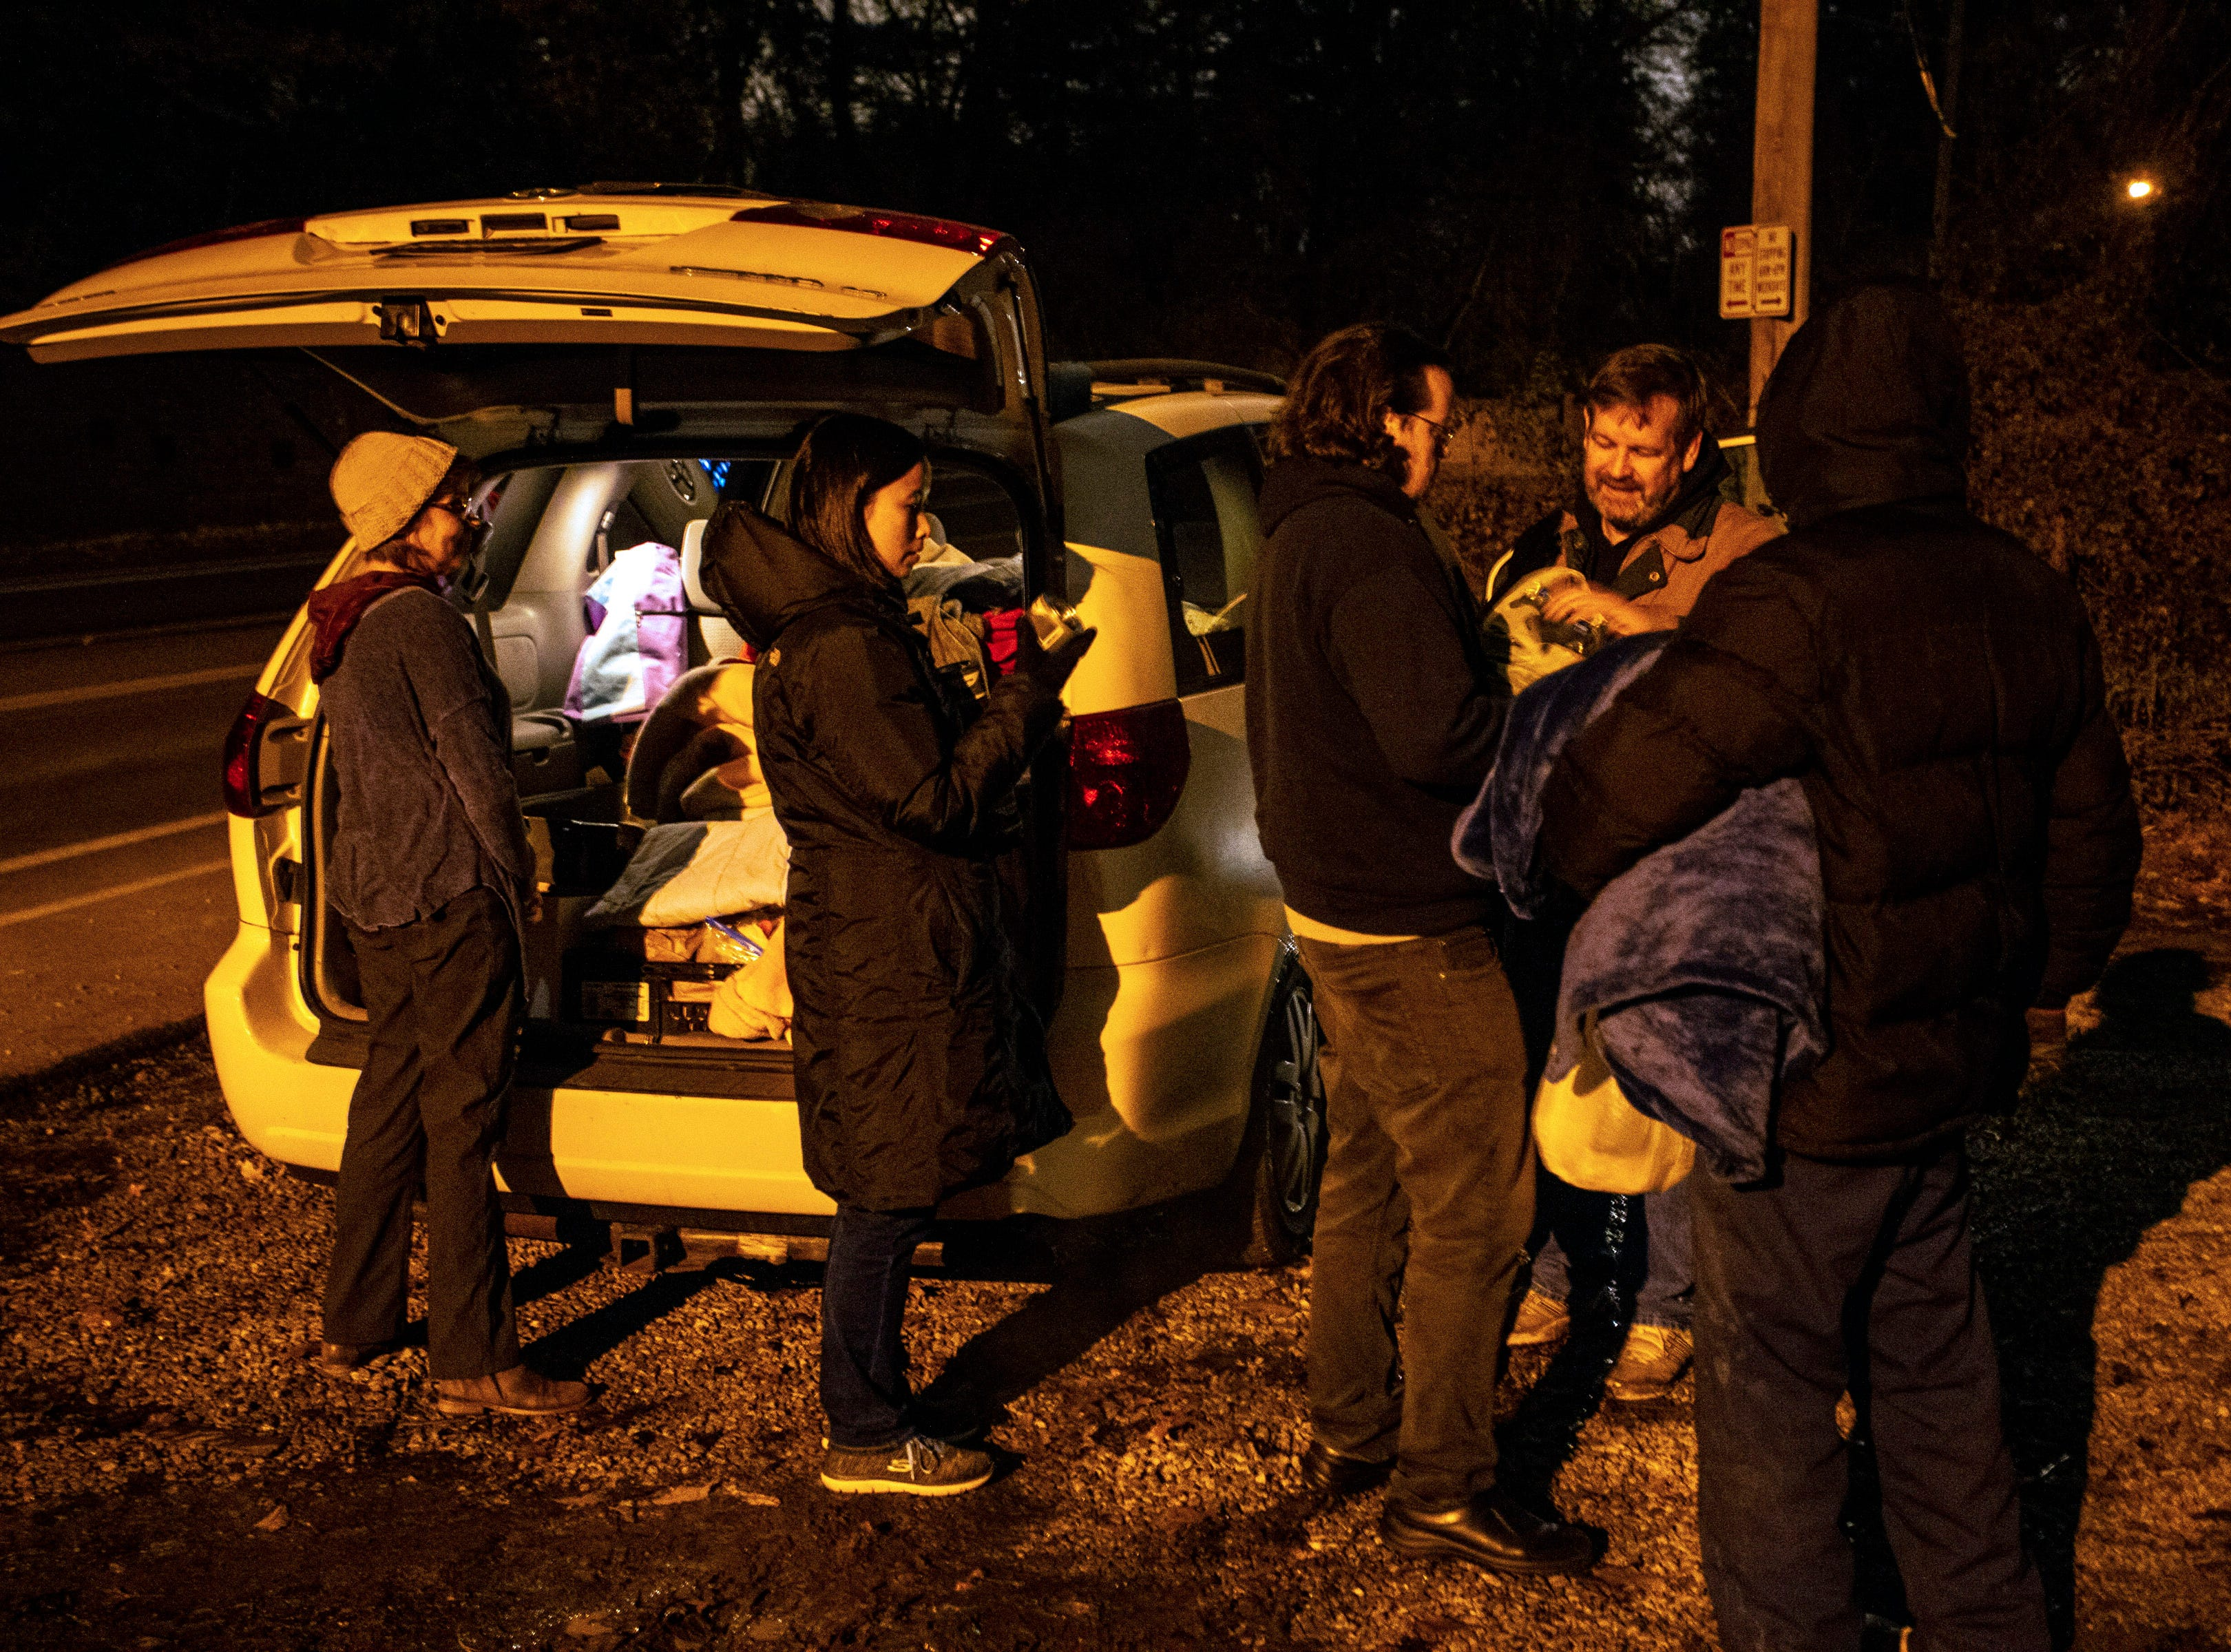 Volunteers make a stop along a darkened stretch of Lexington Avenue to distribute items to the homeless living in nearby wooded areas. 11/26/18